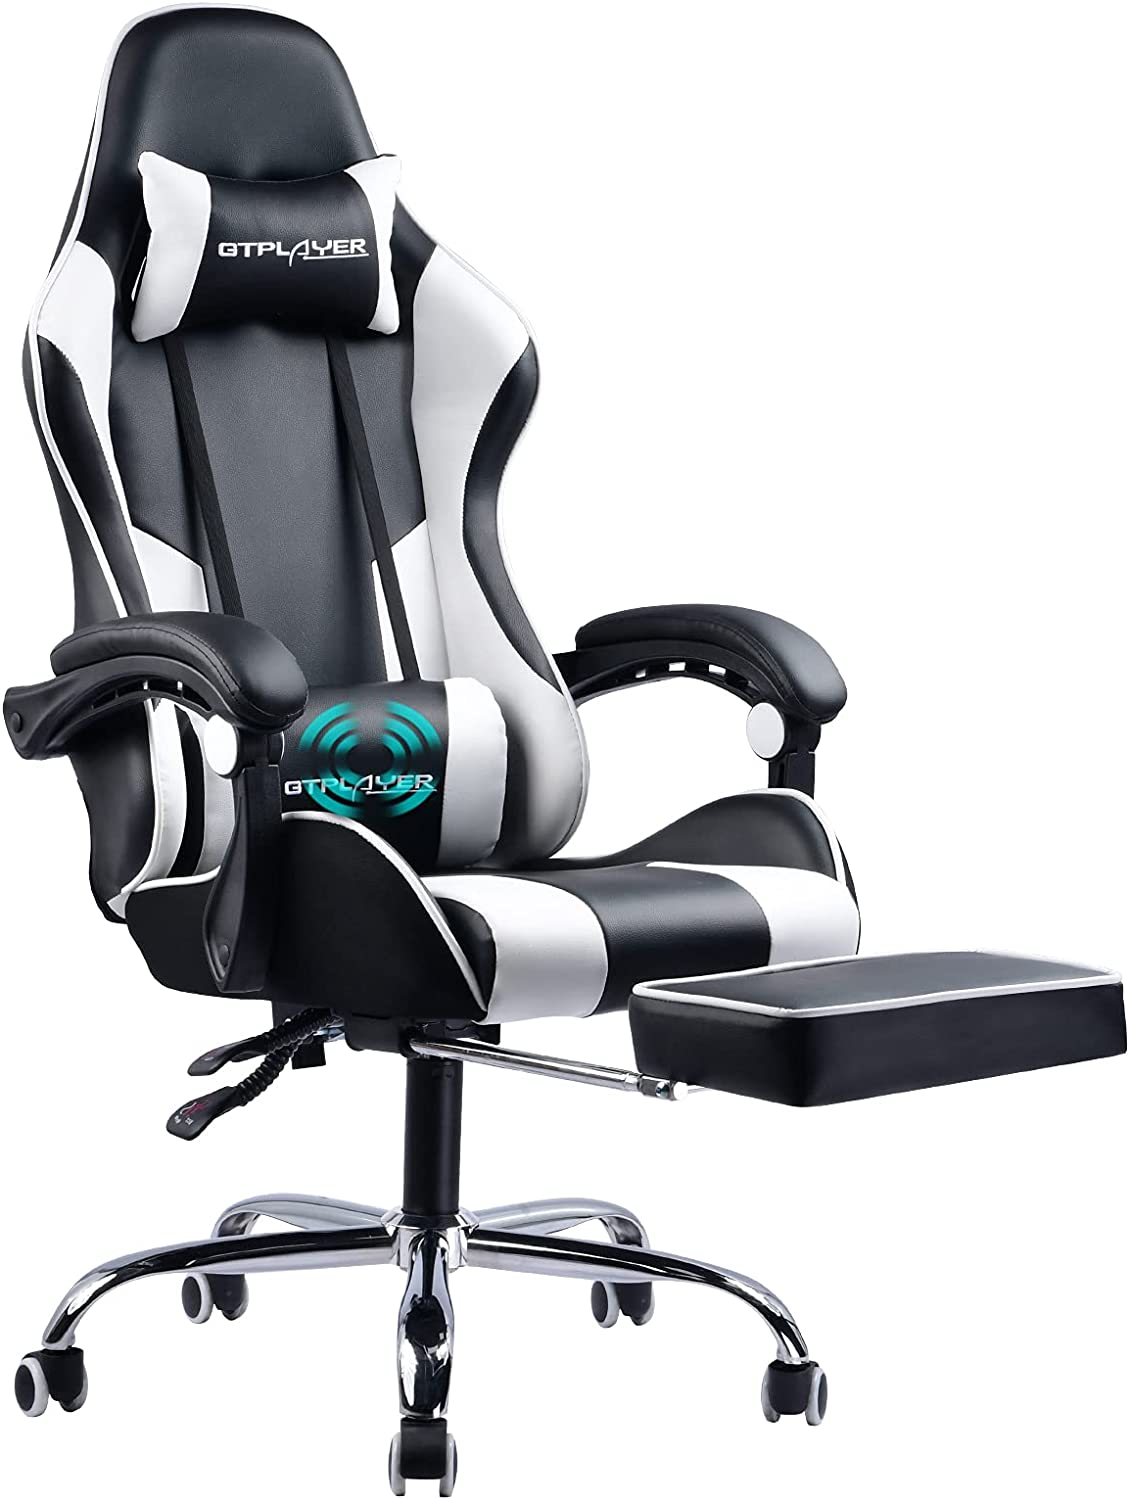 GTPLAYER Gaming Chair Review